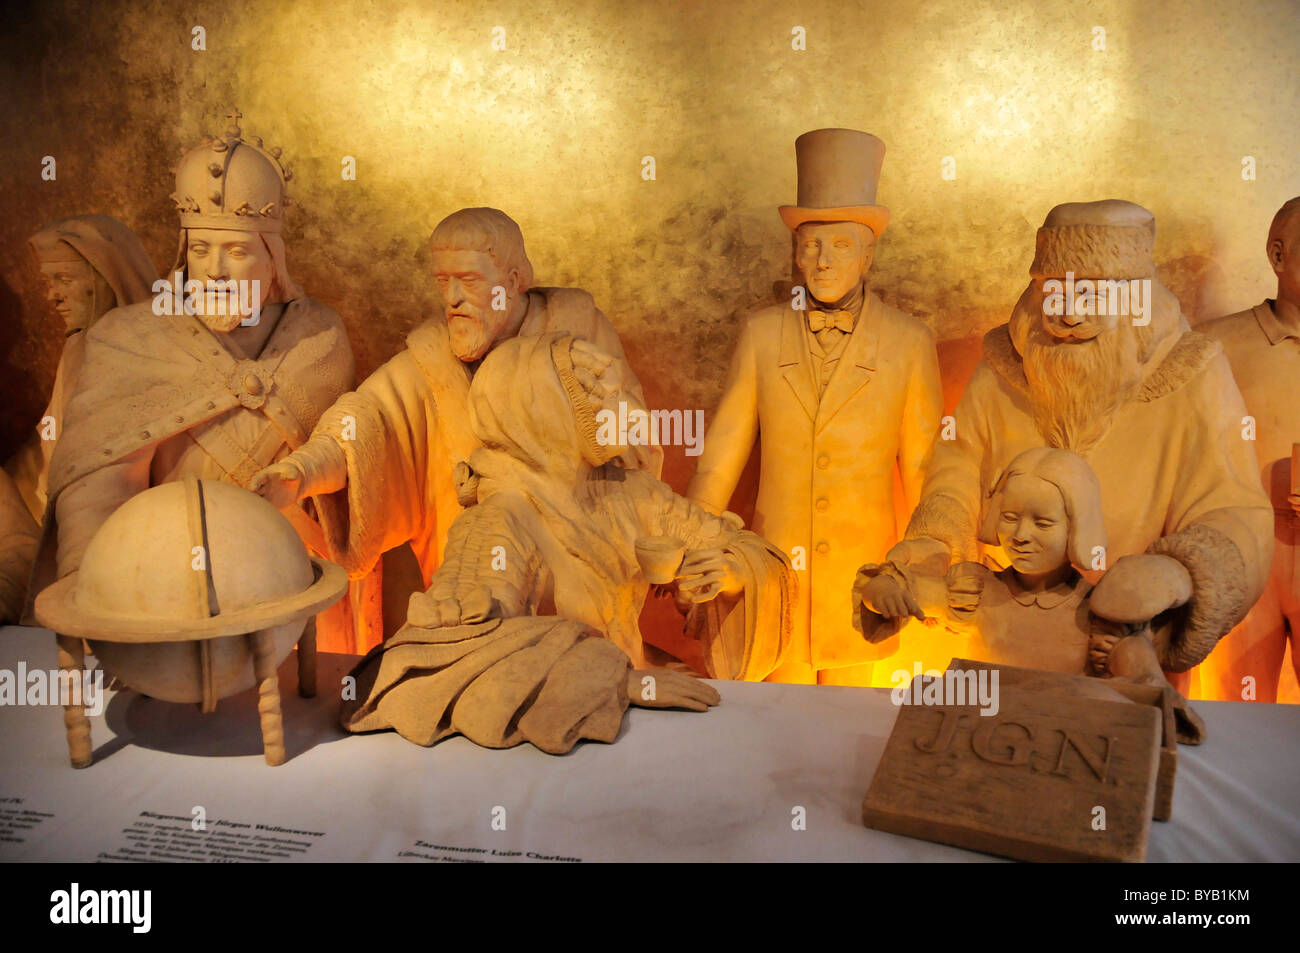 Marzipan figures in the Niederreger marzipan museum with Johann Georg Niederegger, founder of the Niederreger marzipan Stock Photo